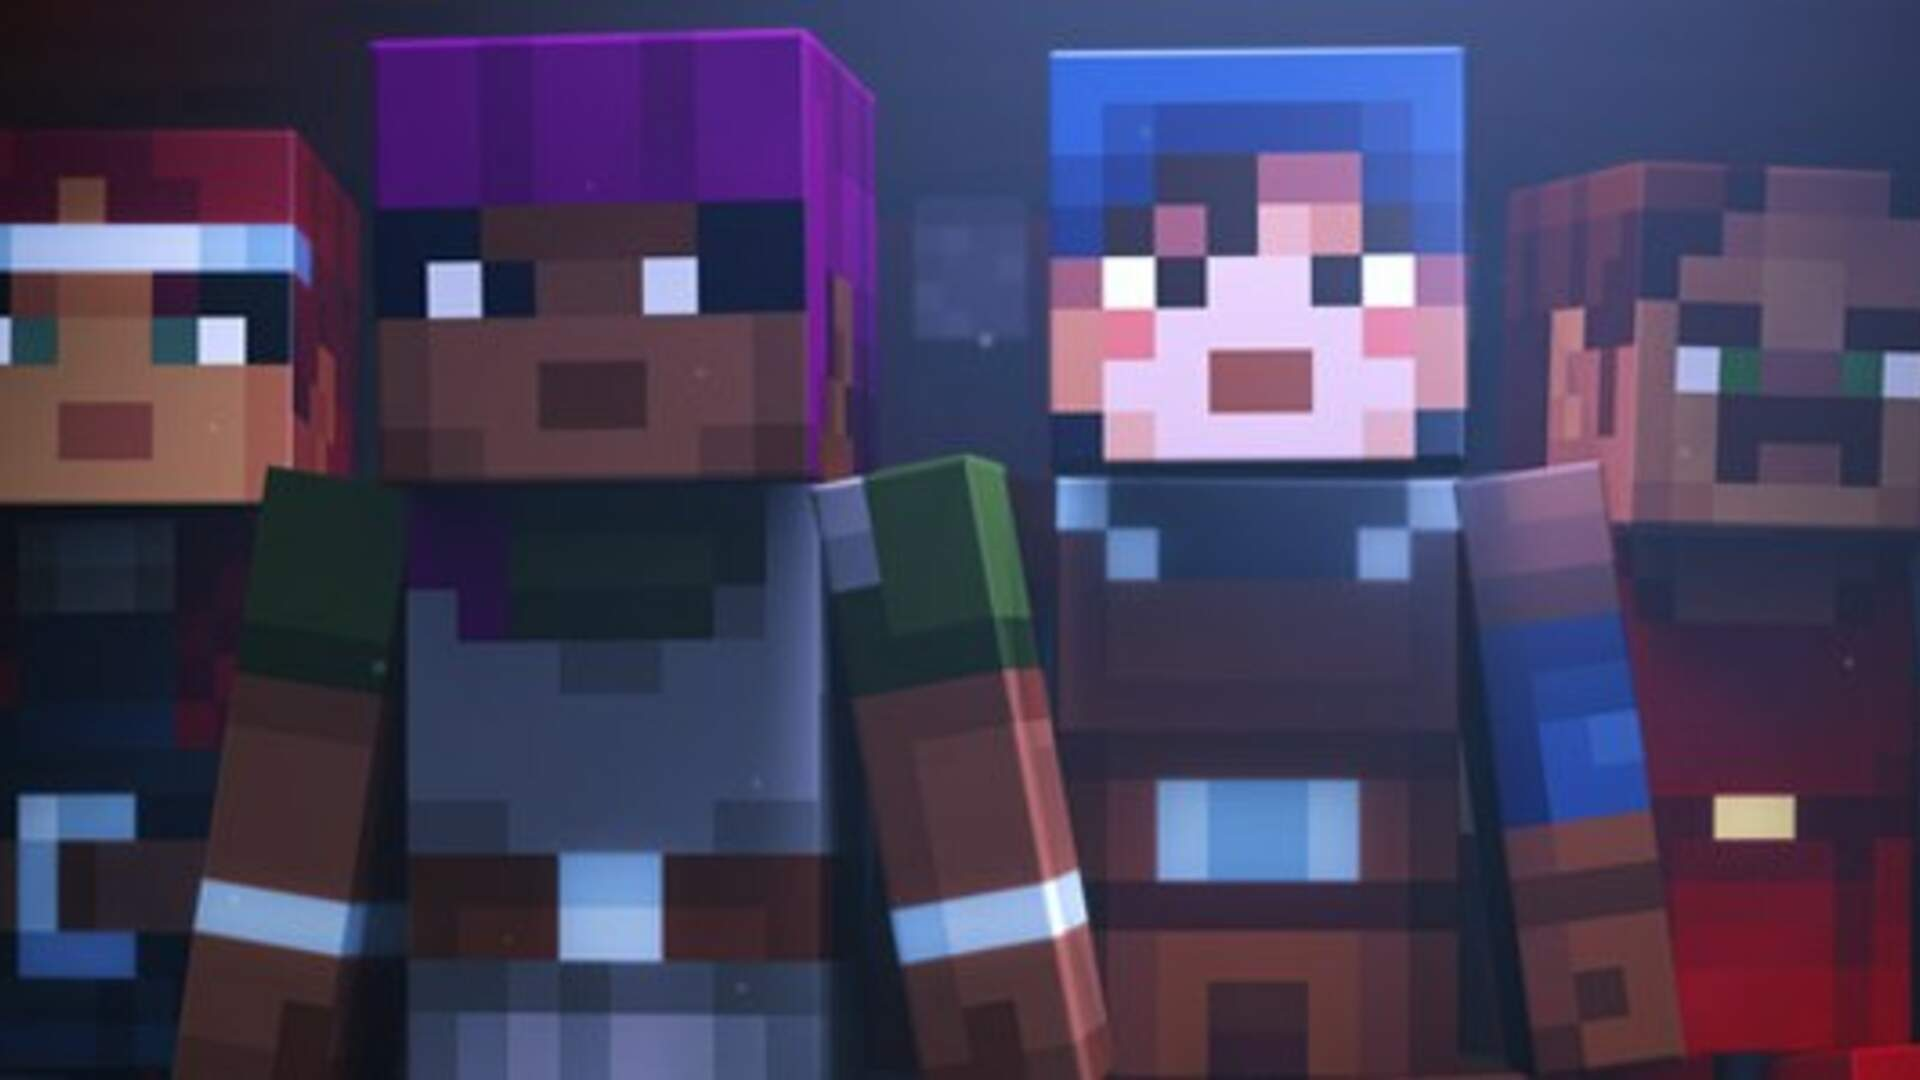 Minecraft: Dungeons Is a Brand-New Game Coming From Mojang in 2019